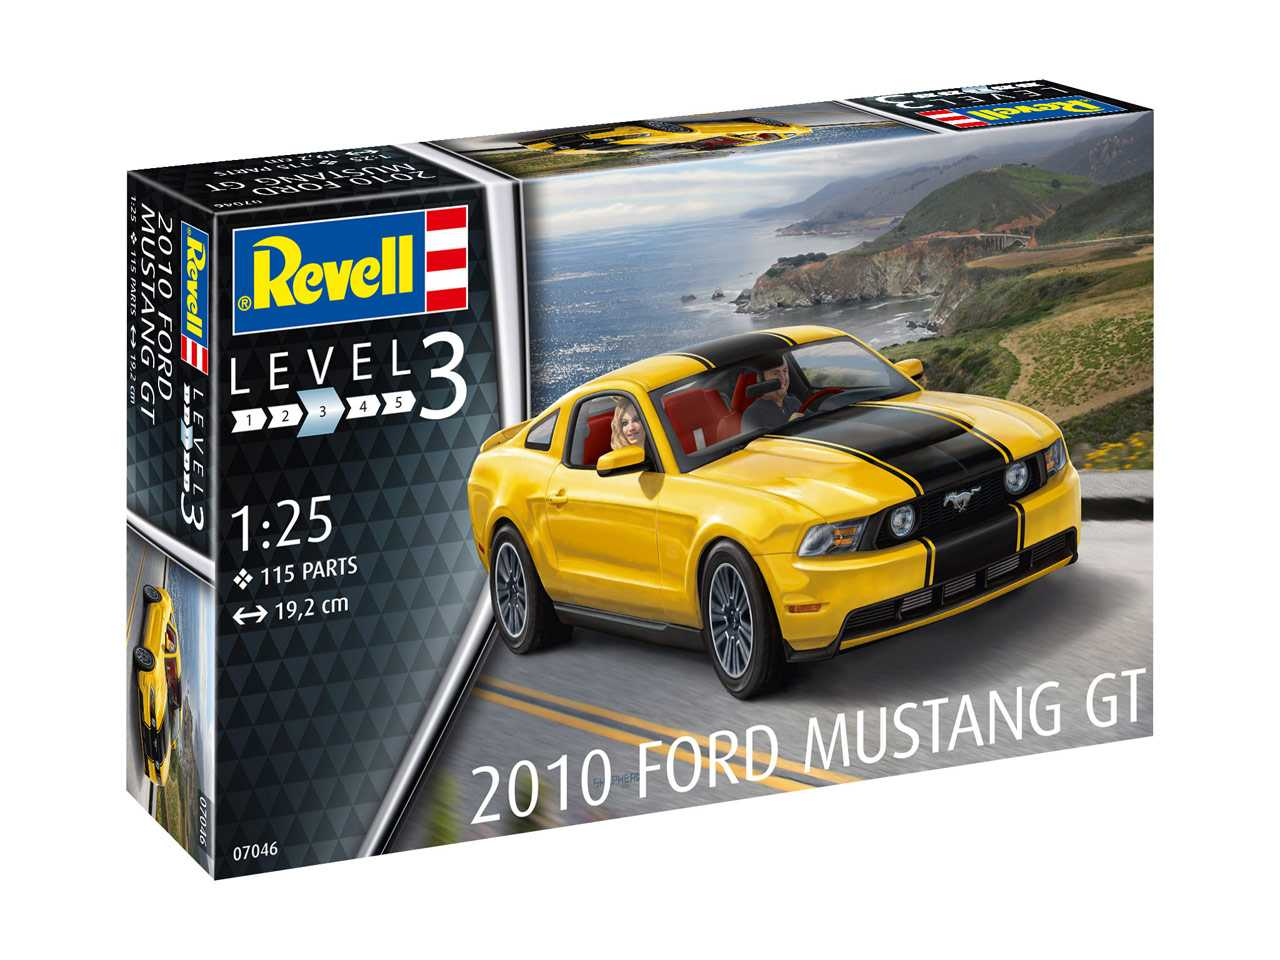 1:25 Ford Mustang GT, 2010